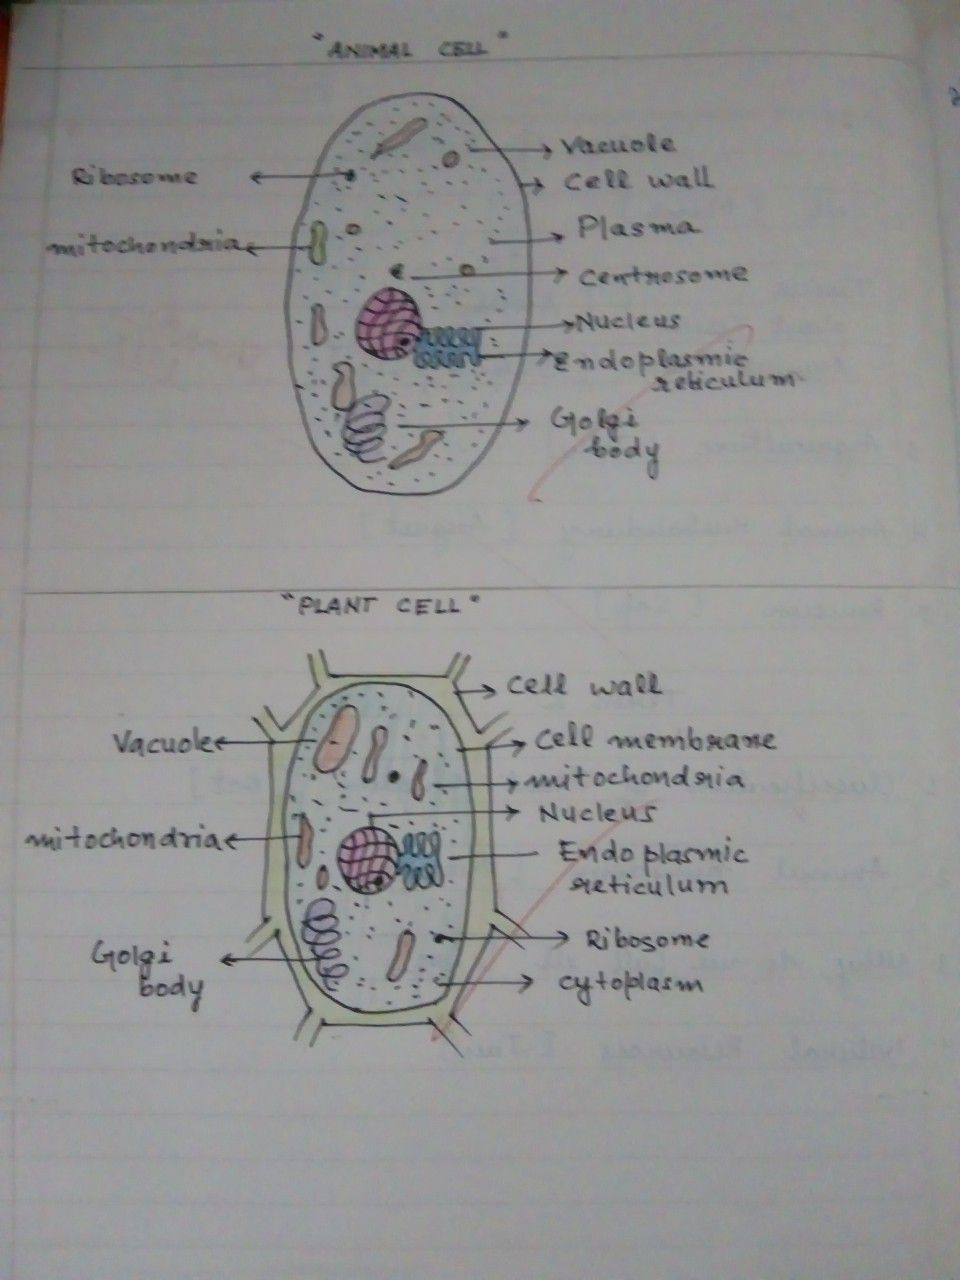 Plant Cell And Animal Cell Plant And Animal Cells Plant Cell Plant Cell Drawing